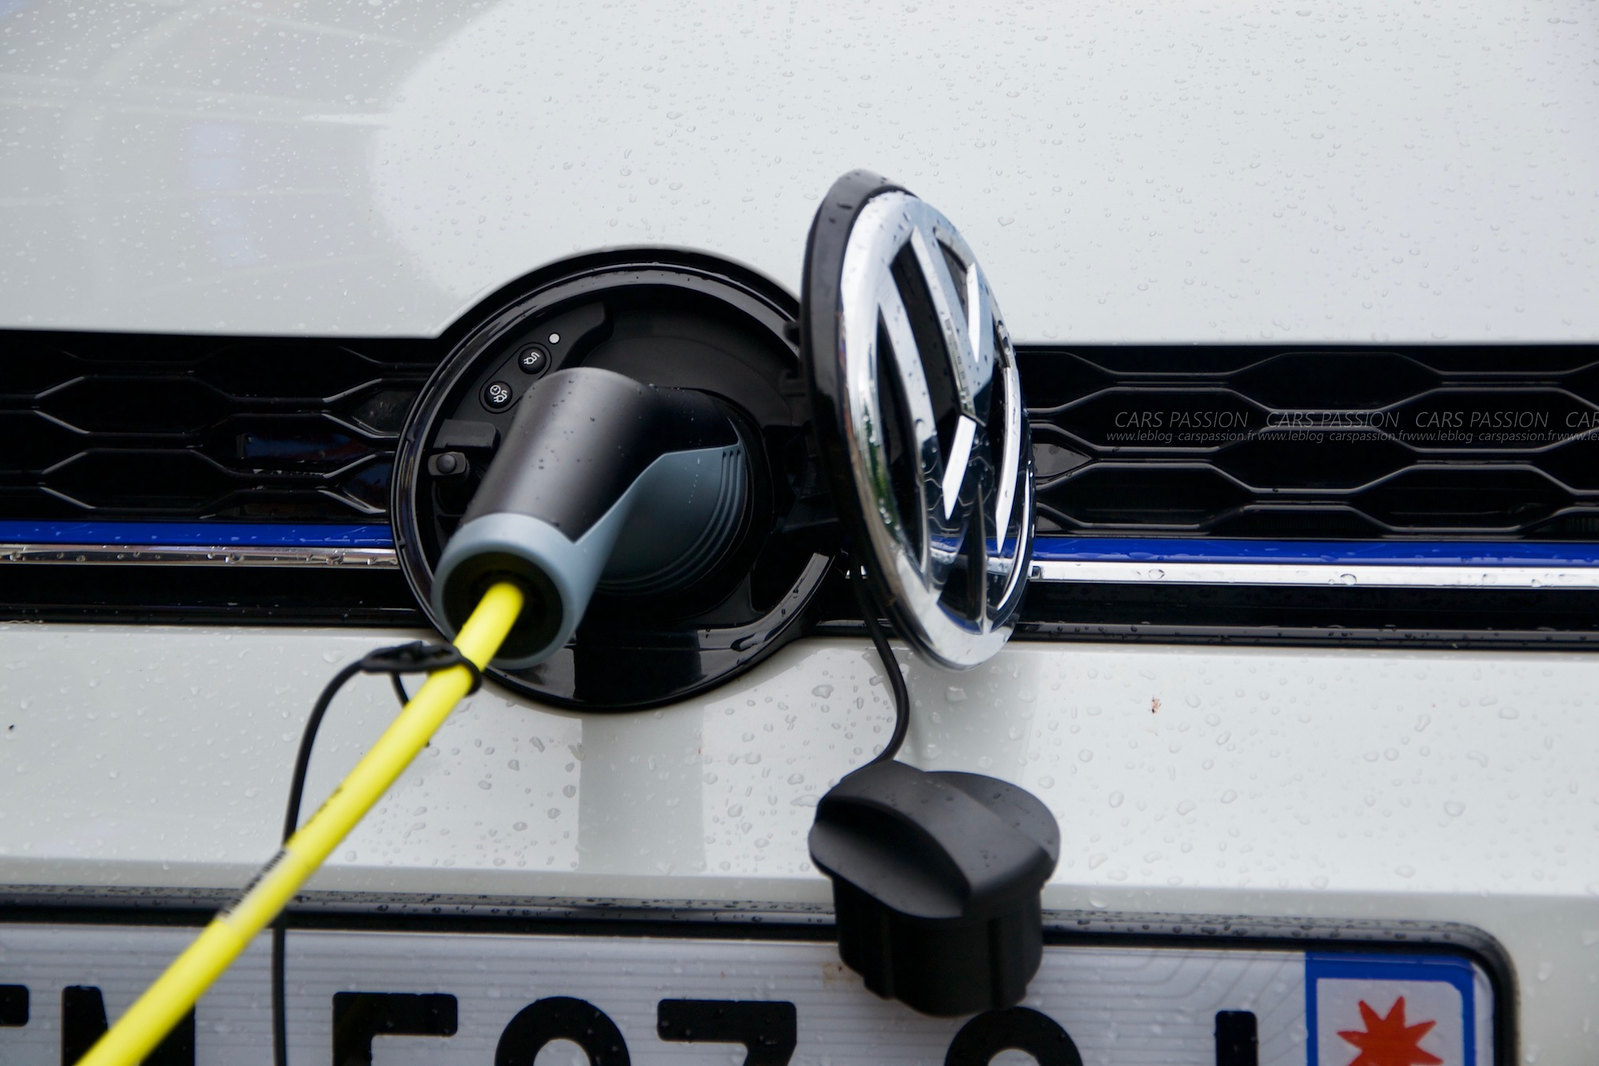 Charge 2 Golf GTE